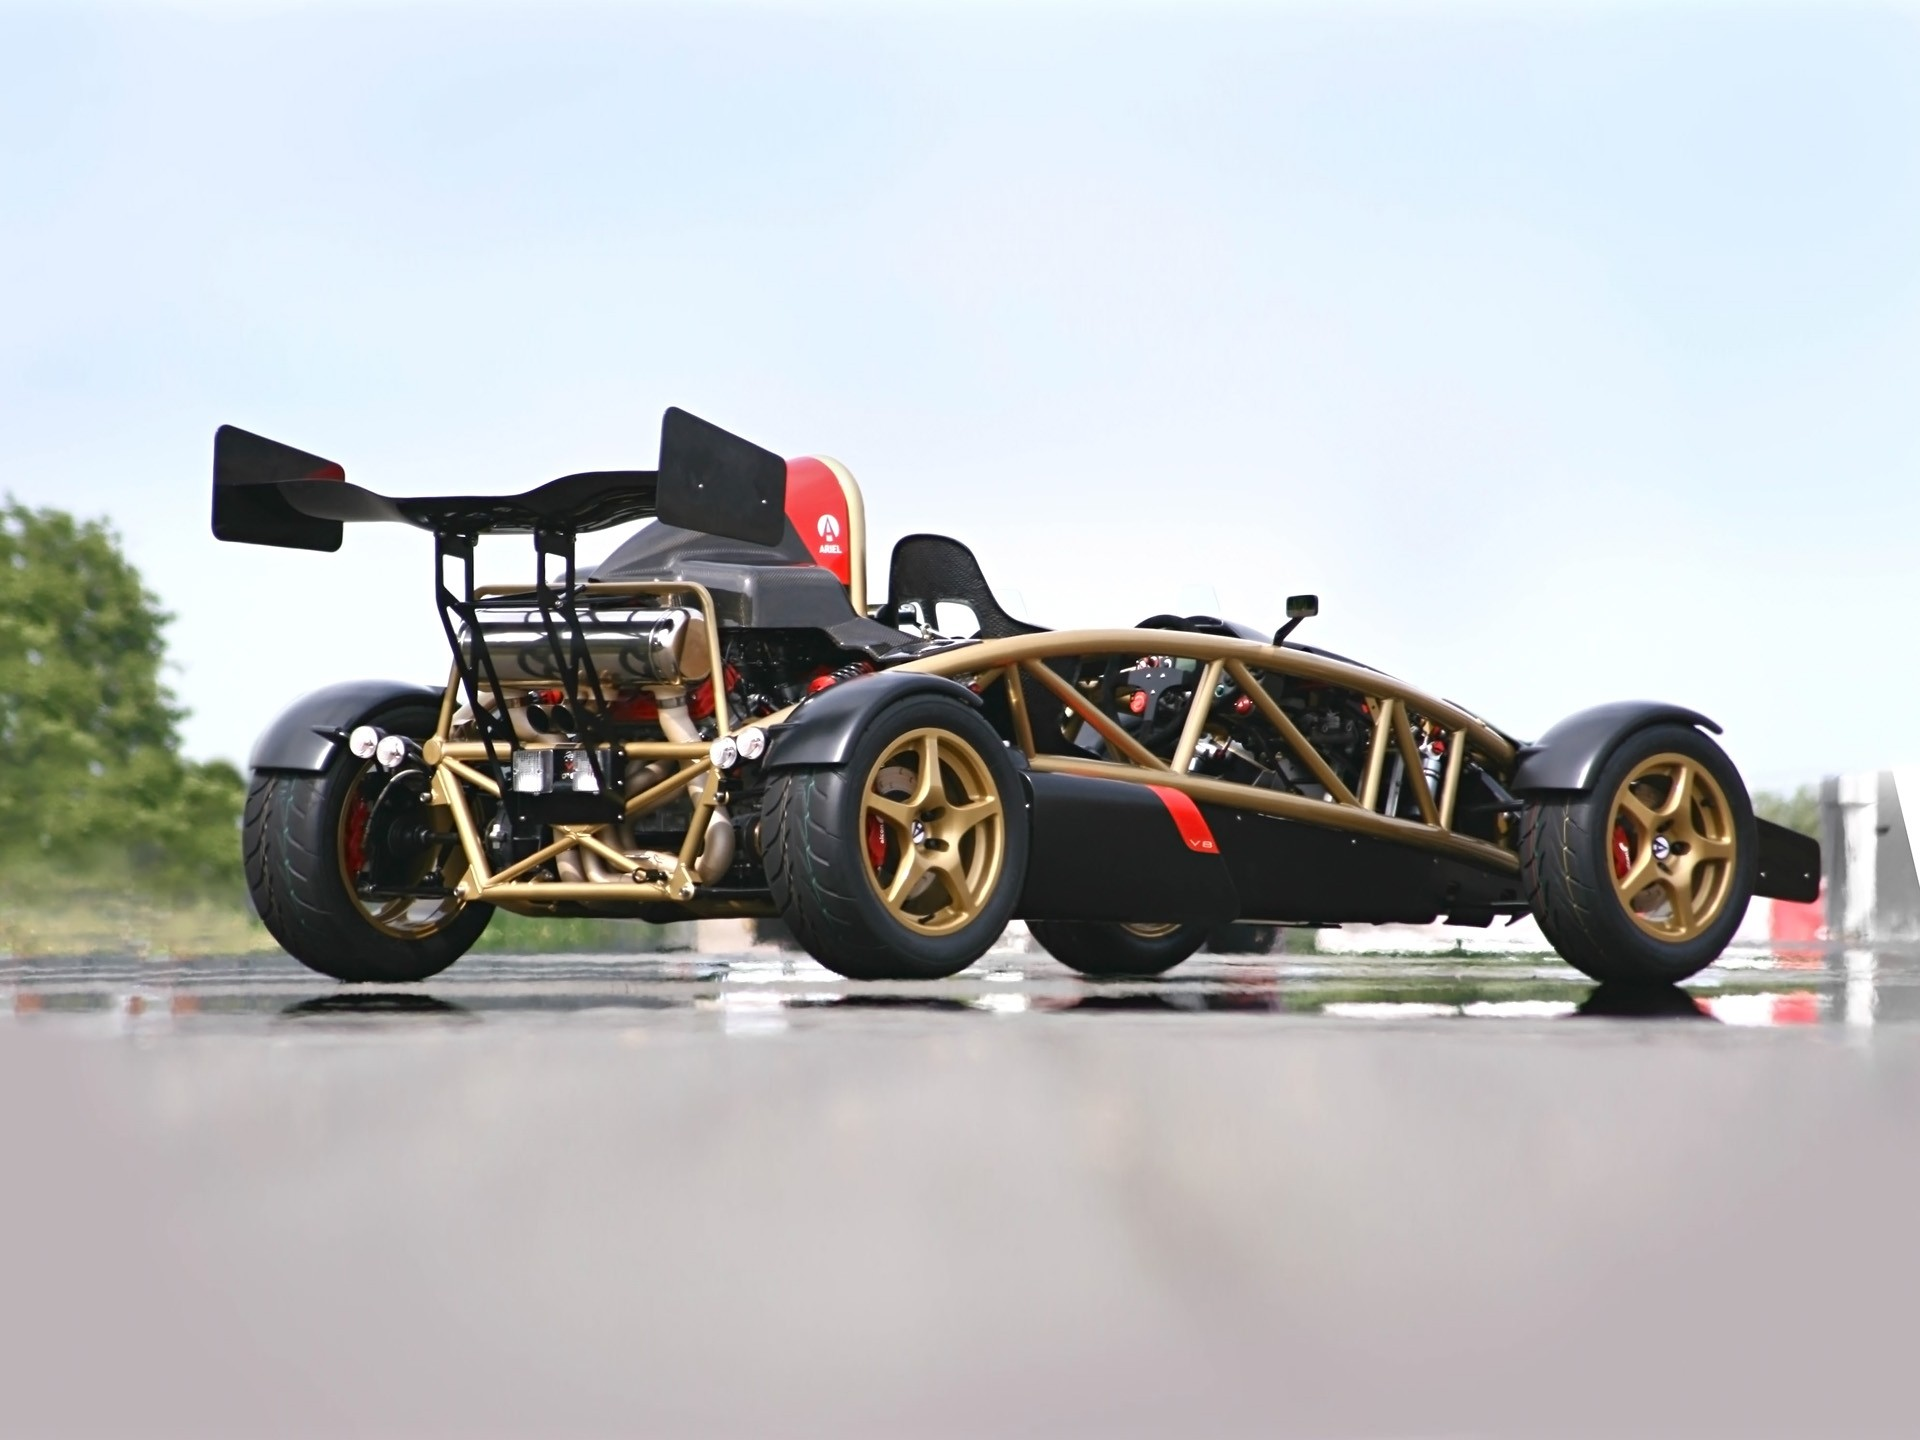 ariel atom 500 v8 specs 2011 2012 2013 2014 2015 2016 2017 2018 autoevolution. Black Bedroom Furniture Sets. Home Design Ideas